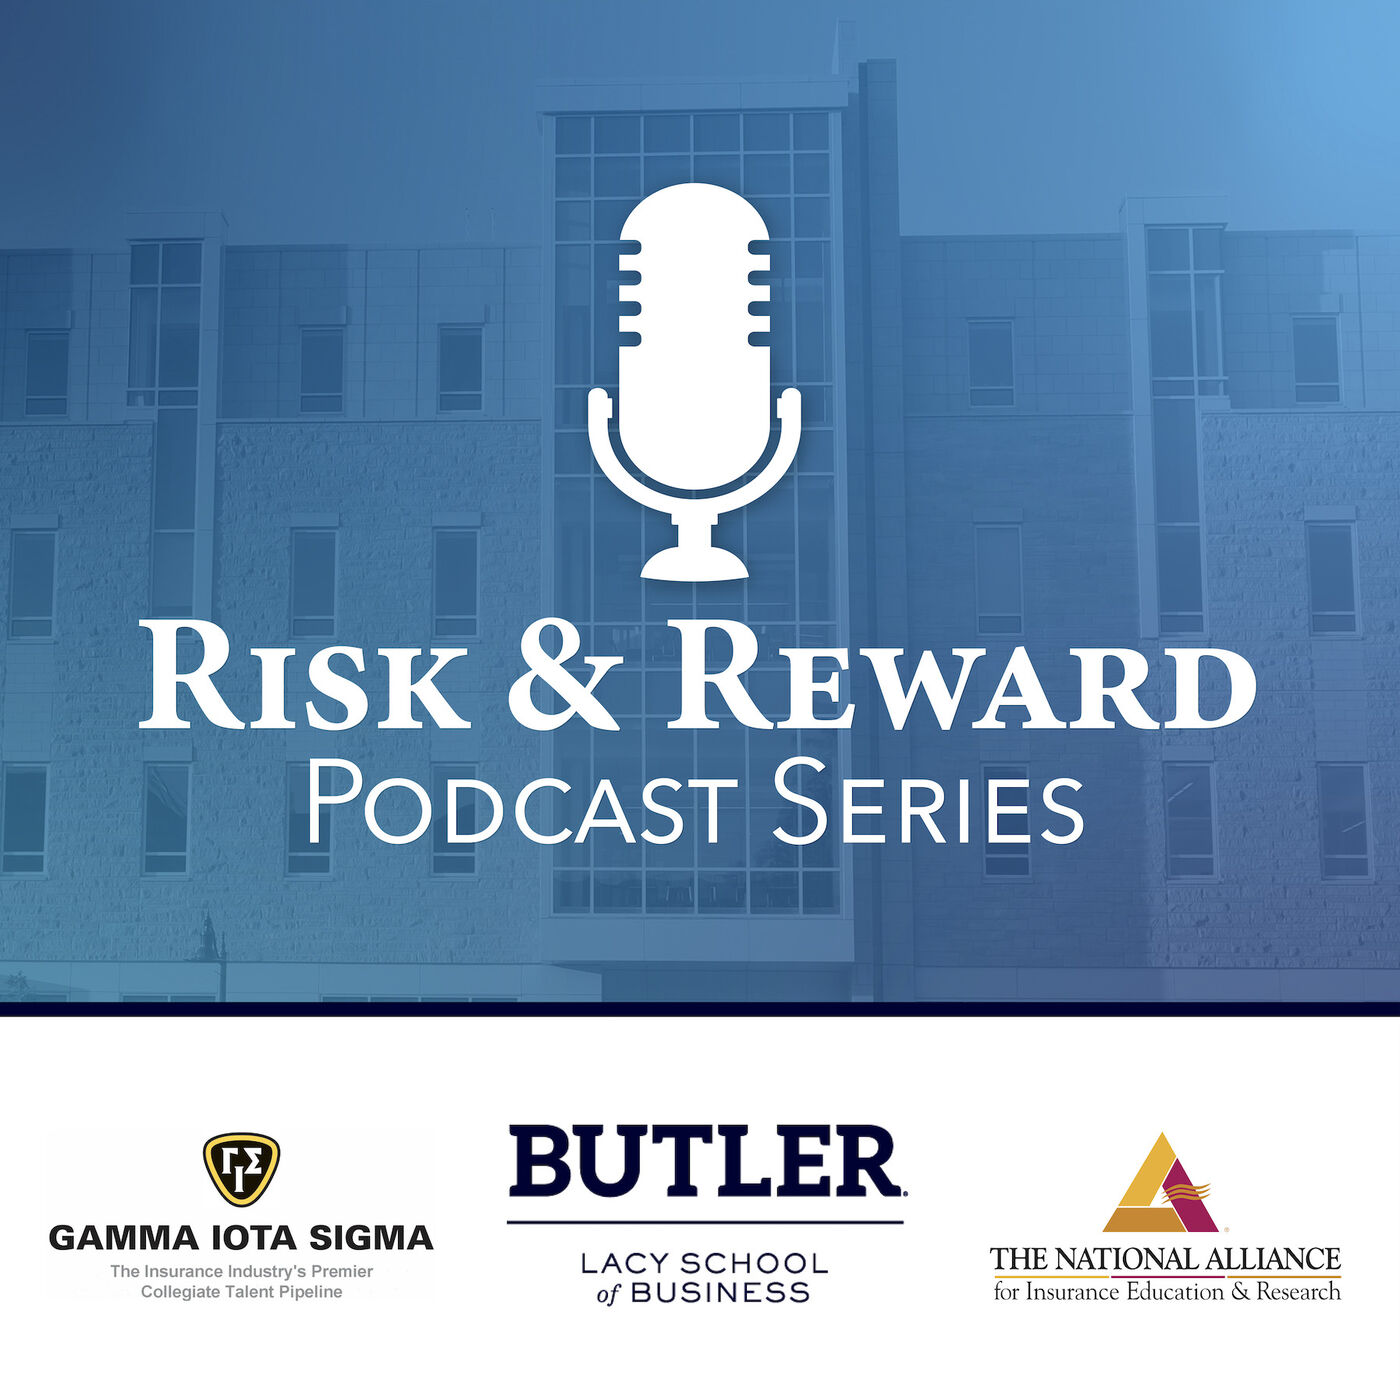 Risk and Reward - Diversity, Equity, & Inclusion: How Will You Contribute?